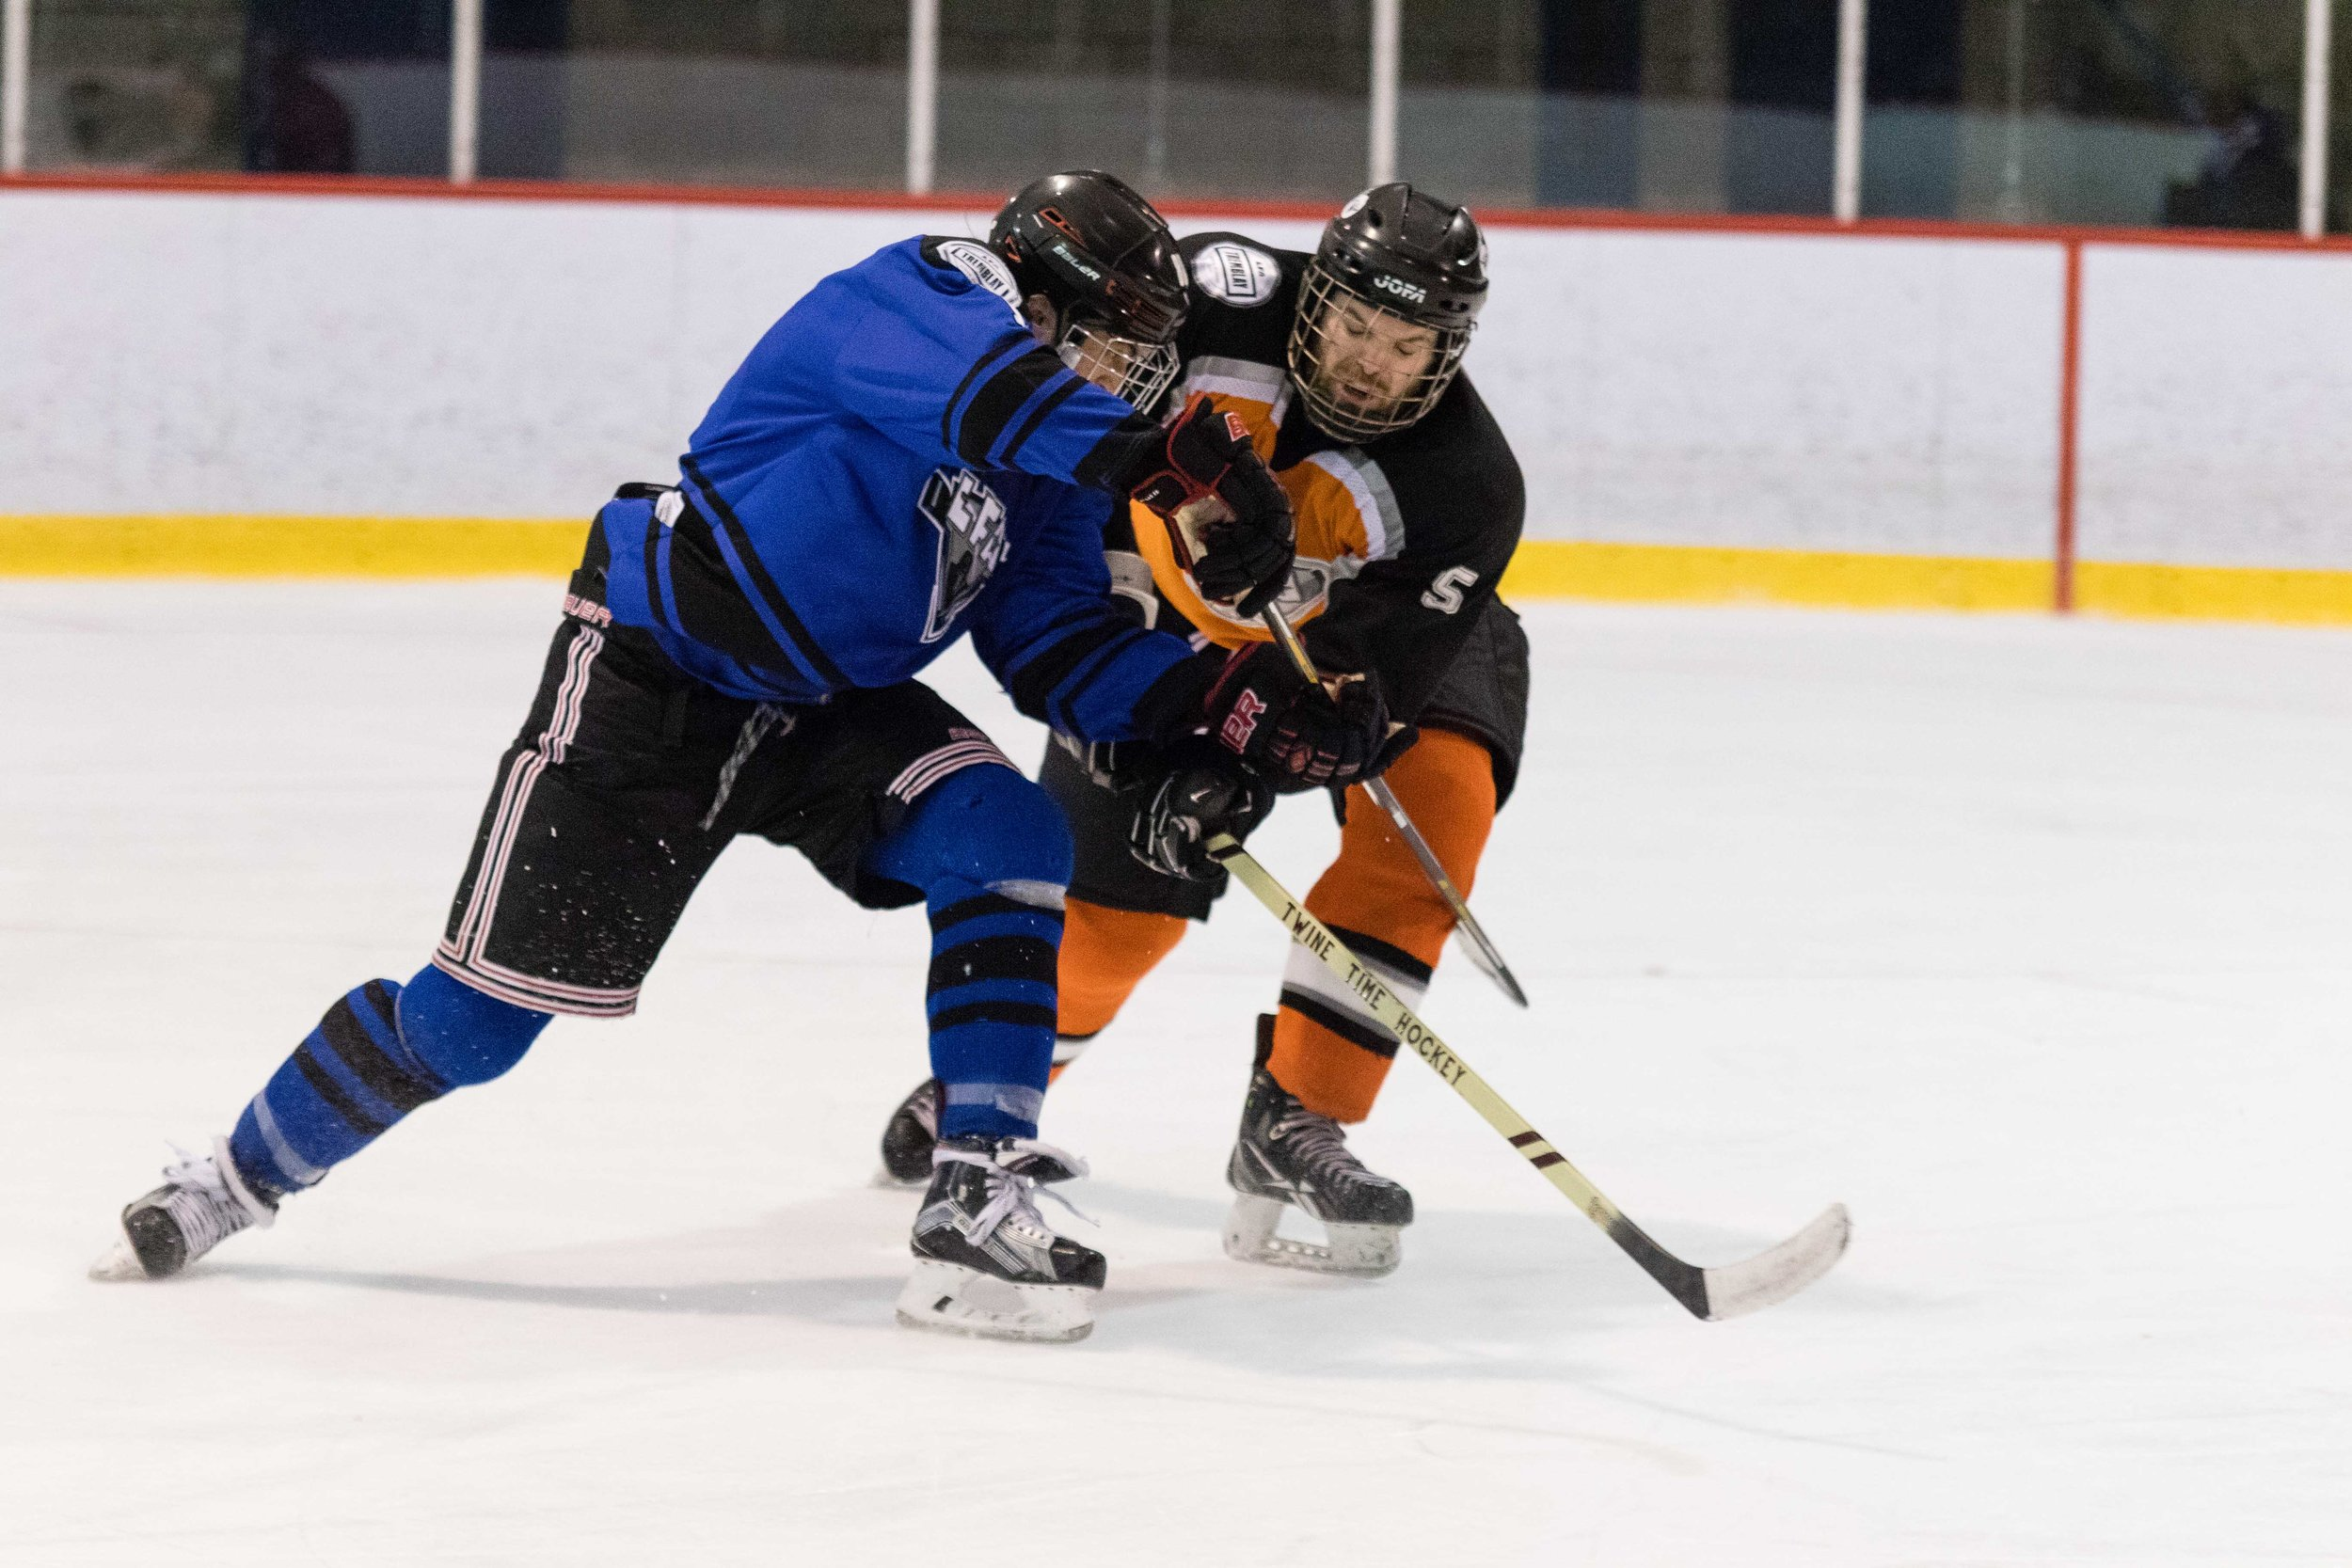 THE AVENGERS WILL FACE THE METEORS DURING THE SEMI FINAL AND CHAMPIONSHIP GAME OF OUR SOUTH SHORE DIVISION MONDAY AT THE BELL COMPLEX IN BROSSARD (ARCHIVE PHOTO)